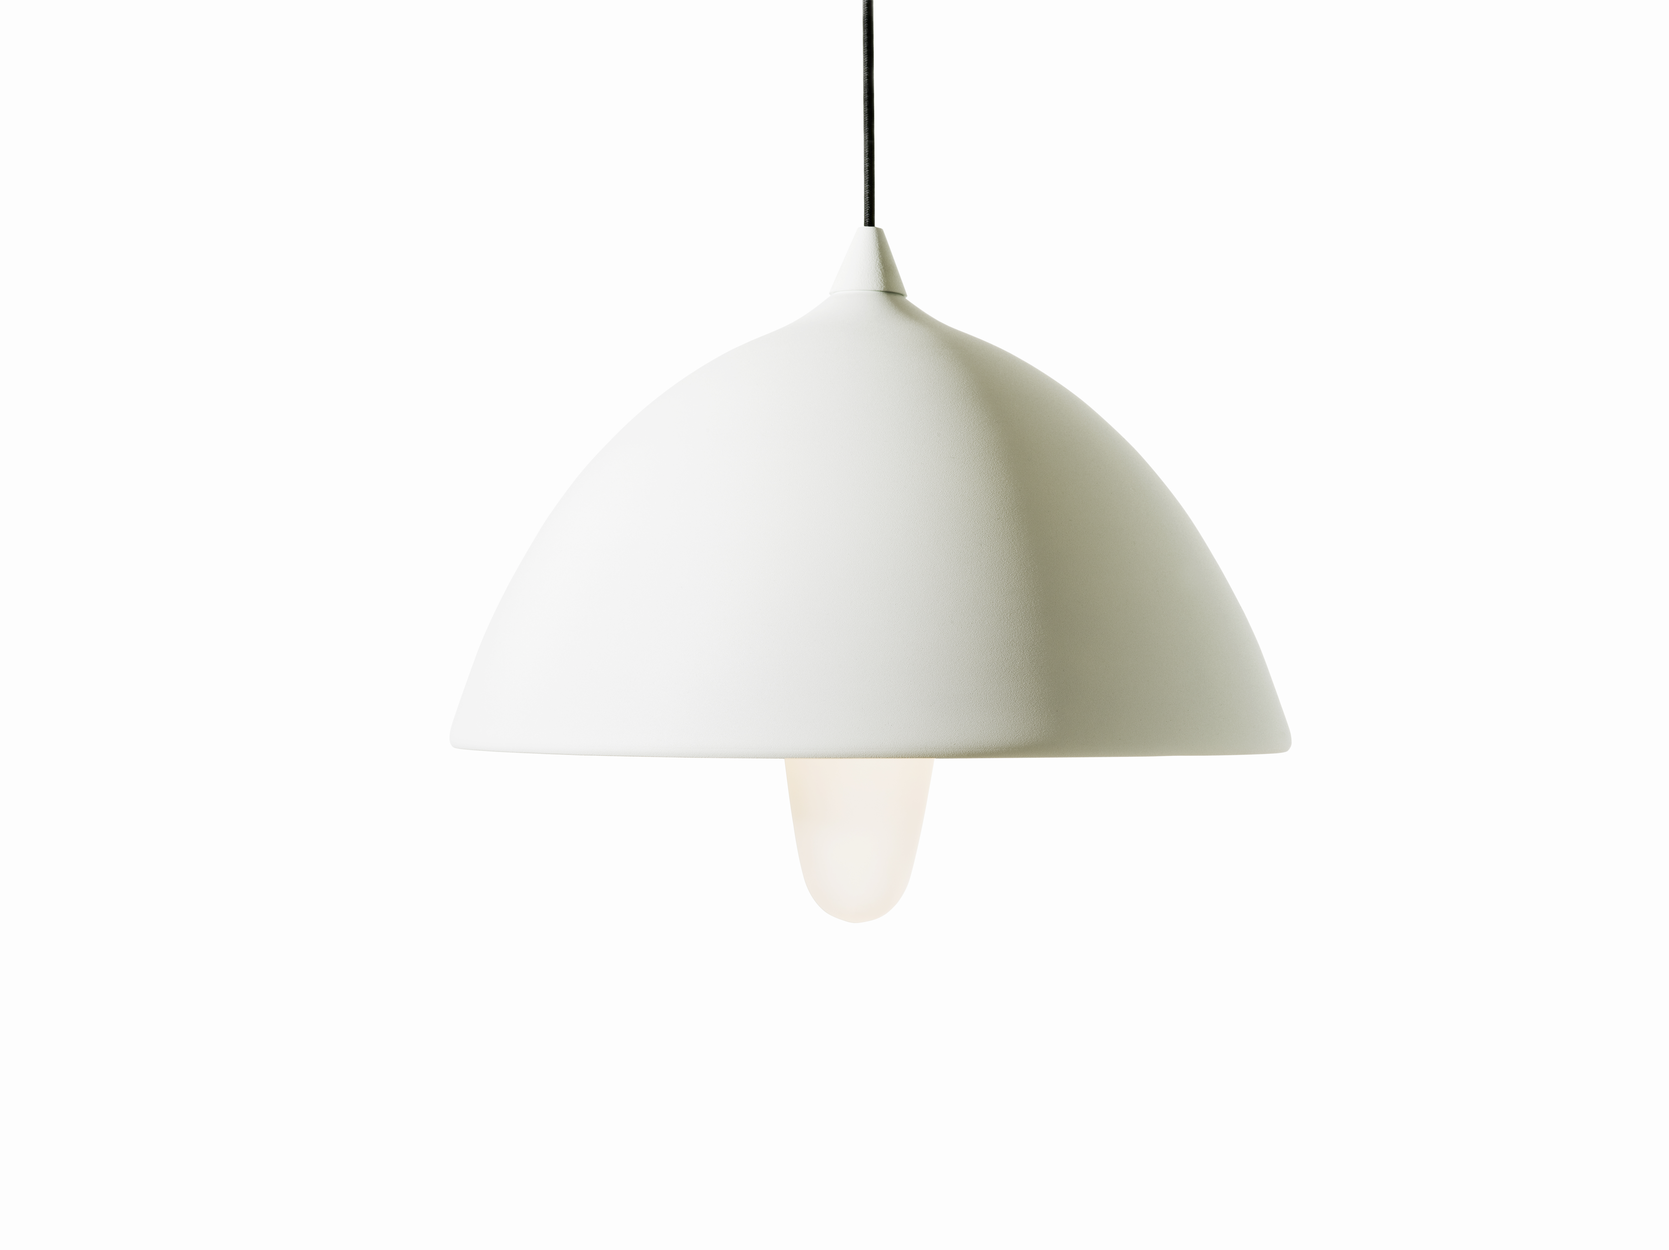 Functionals Hanglamp Aron 401 Wit Pendant White Gimmii Online Shop